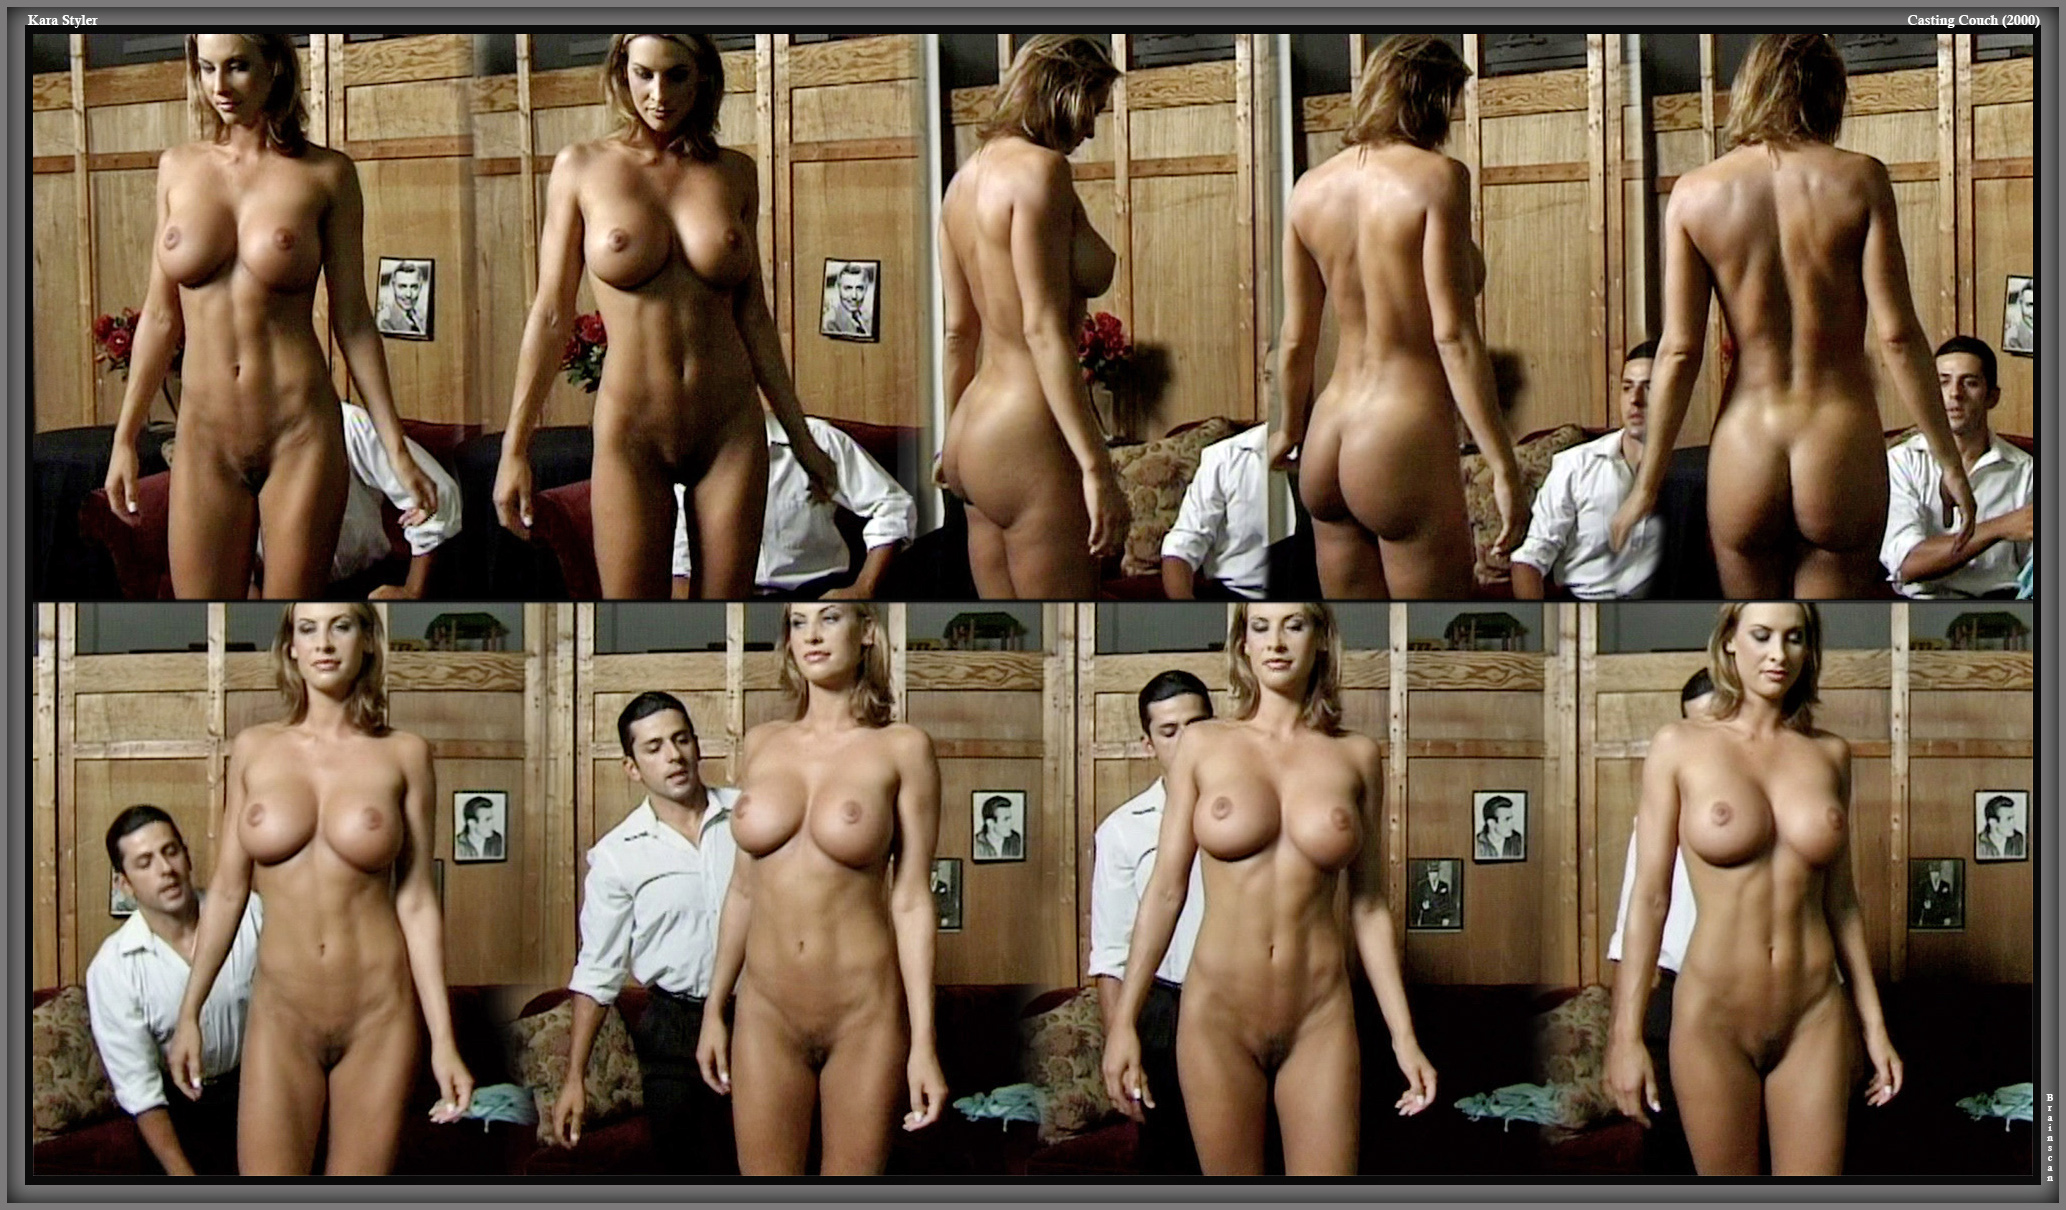 Kathryn erbe nude pics, page